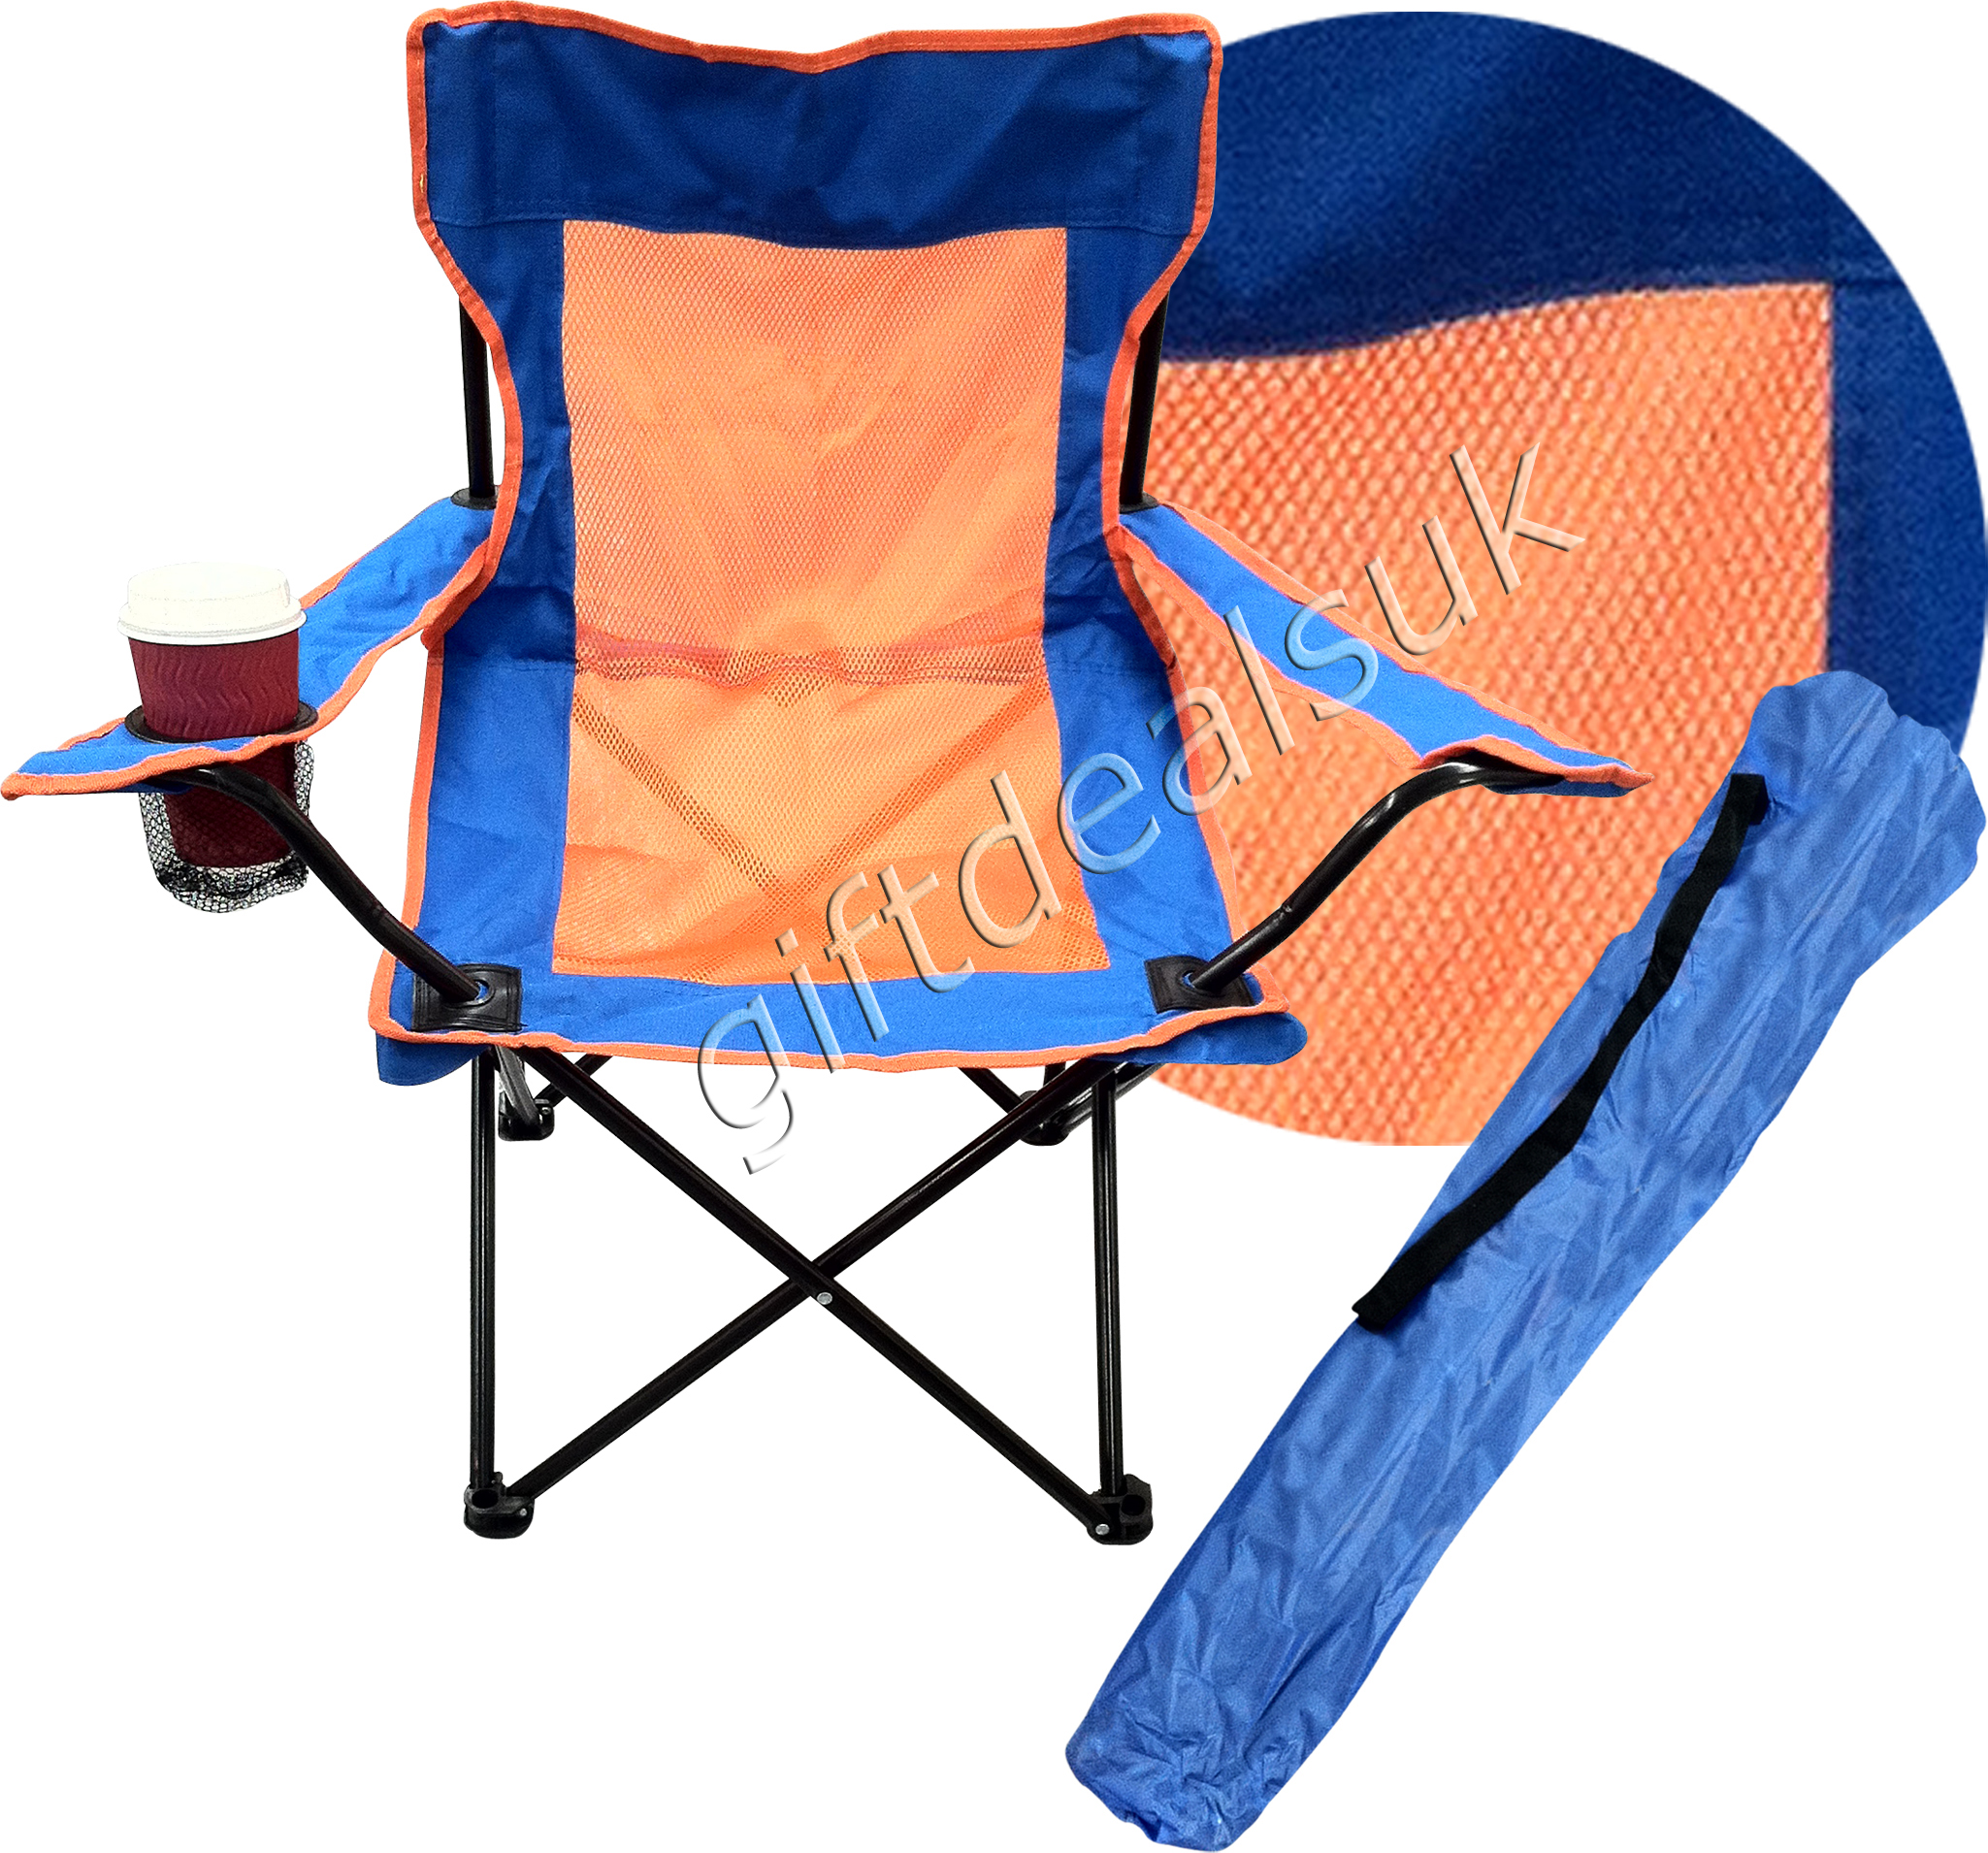 Camping Directors Chair Portable Folding Camping Directors Chair Cup Holder 4